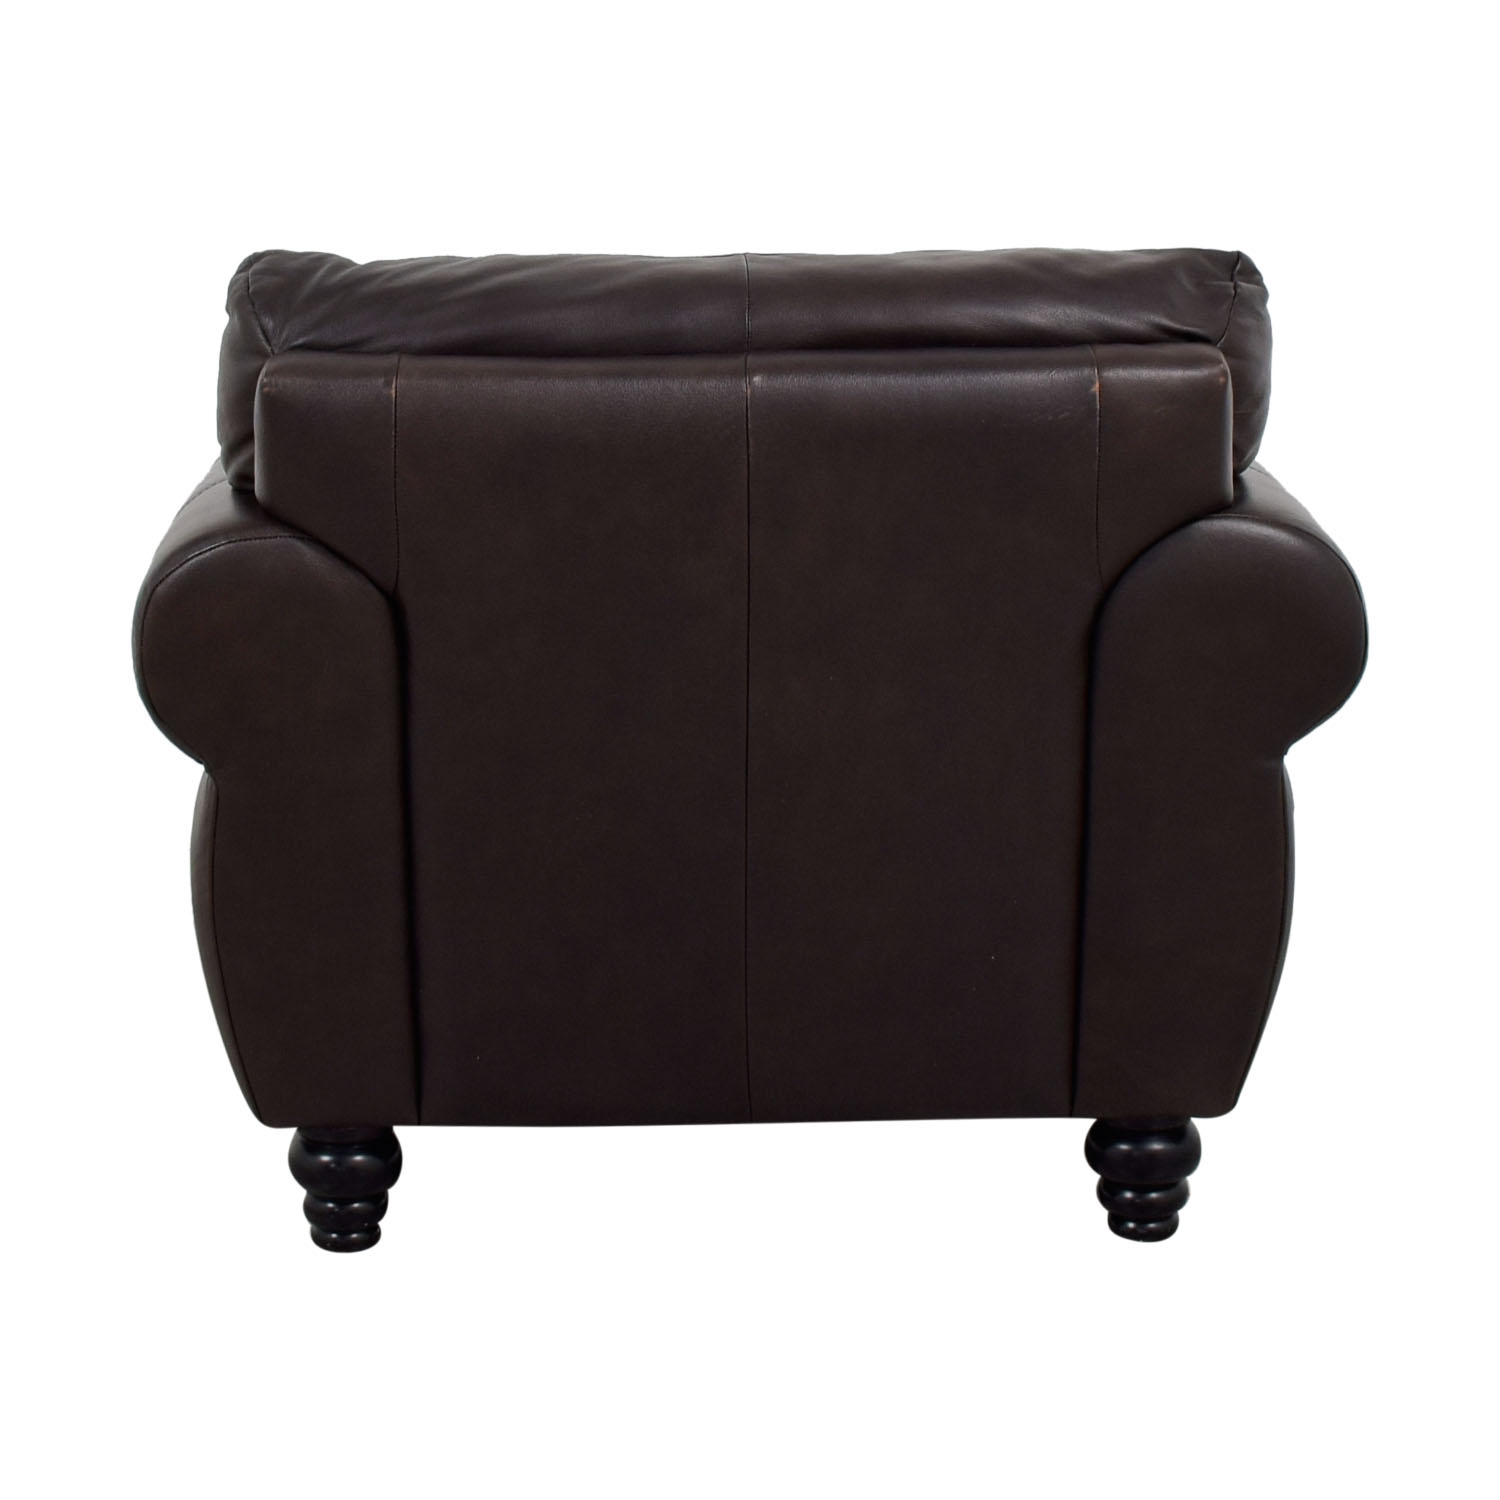 buy Milano-Italy Oversized Chair Milano-Italy Sofas